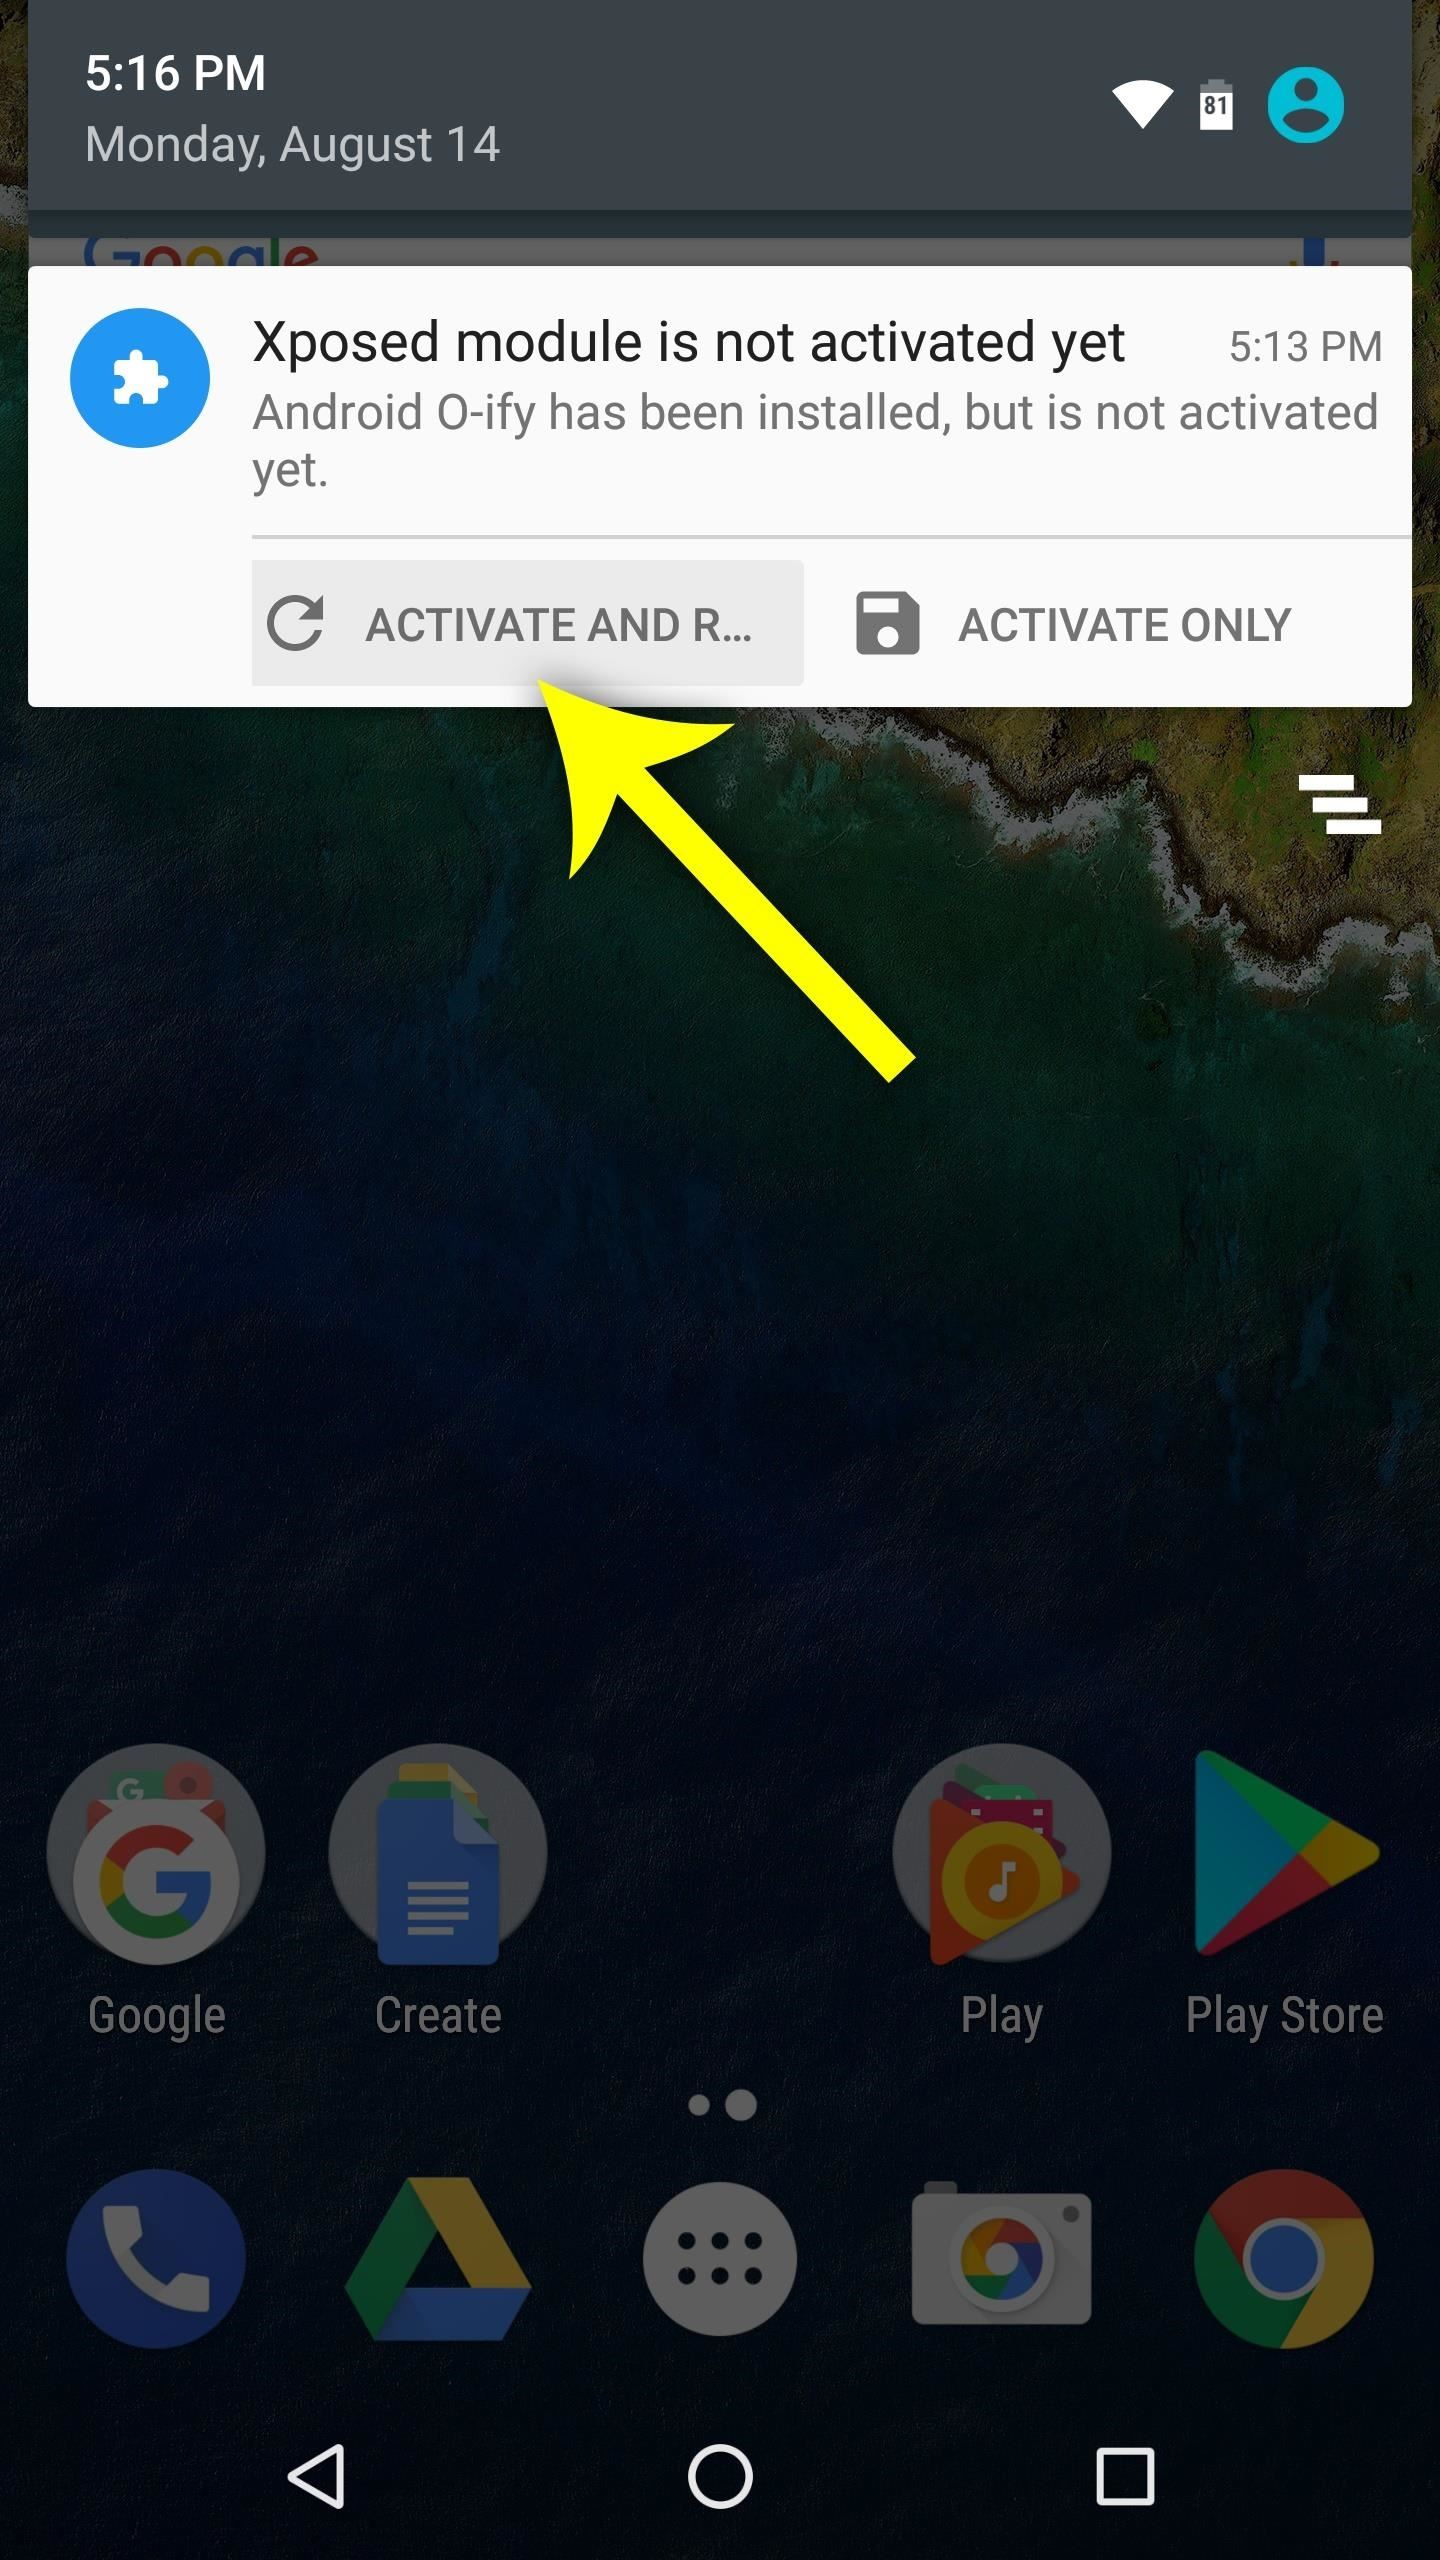 Xposed 101: How to Activate a Newly-Installed Module